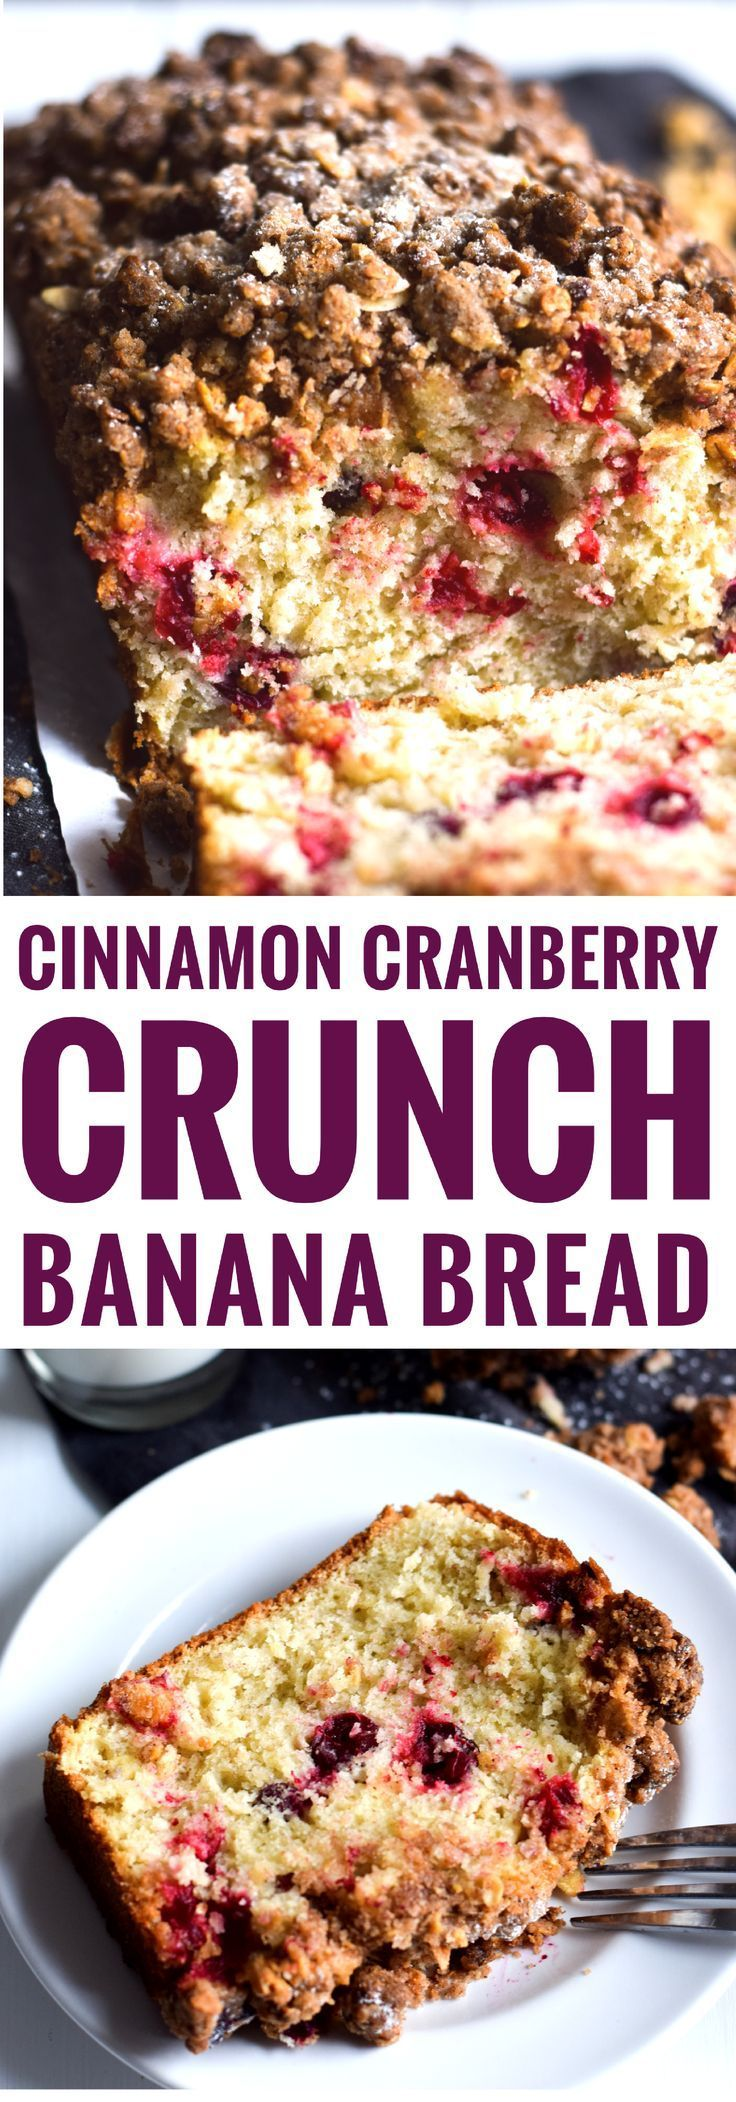 This Cinnamon Cranberry Crunch Banana Bread is super moist, fluffy, filled with cranberries and topped with a granola crumble. Perfect for the holidays!